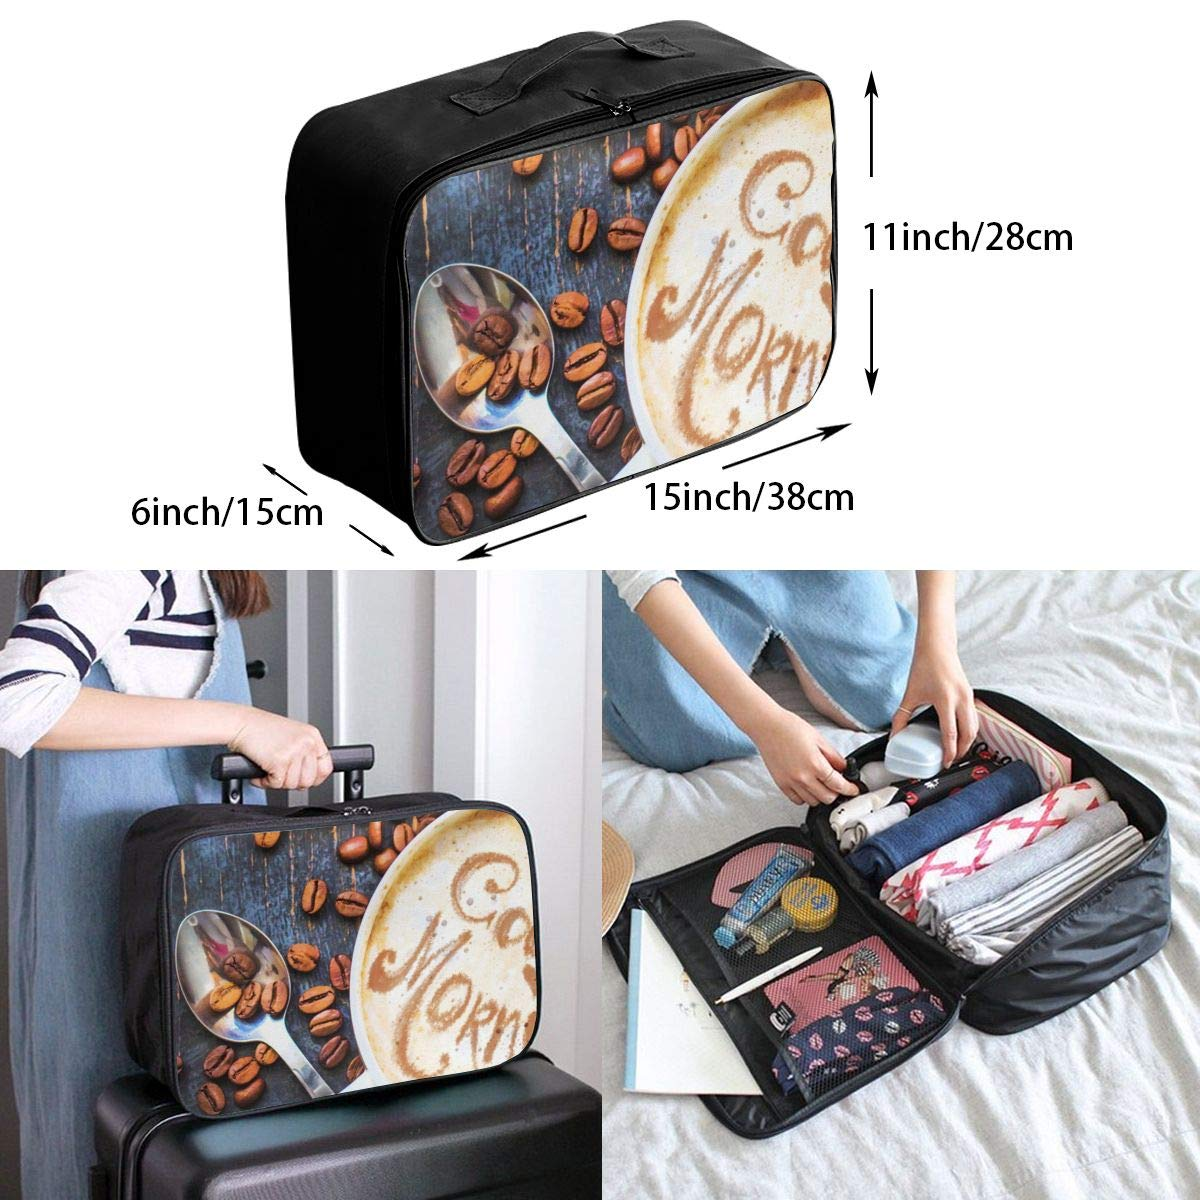 Travel Luggage Duffle Bag Lightweight Portable Handbag Coffee Large Capacity Waterproof Foldable Storage Tote